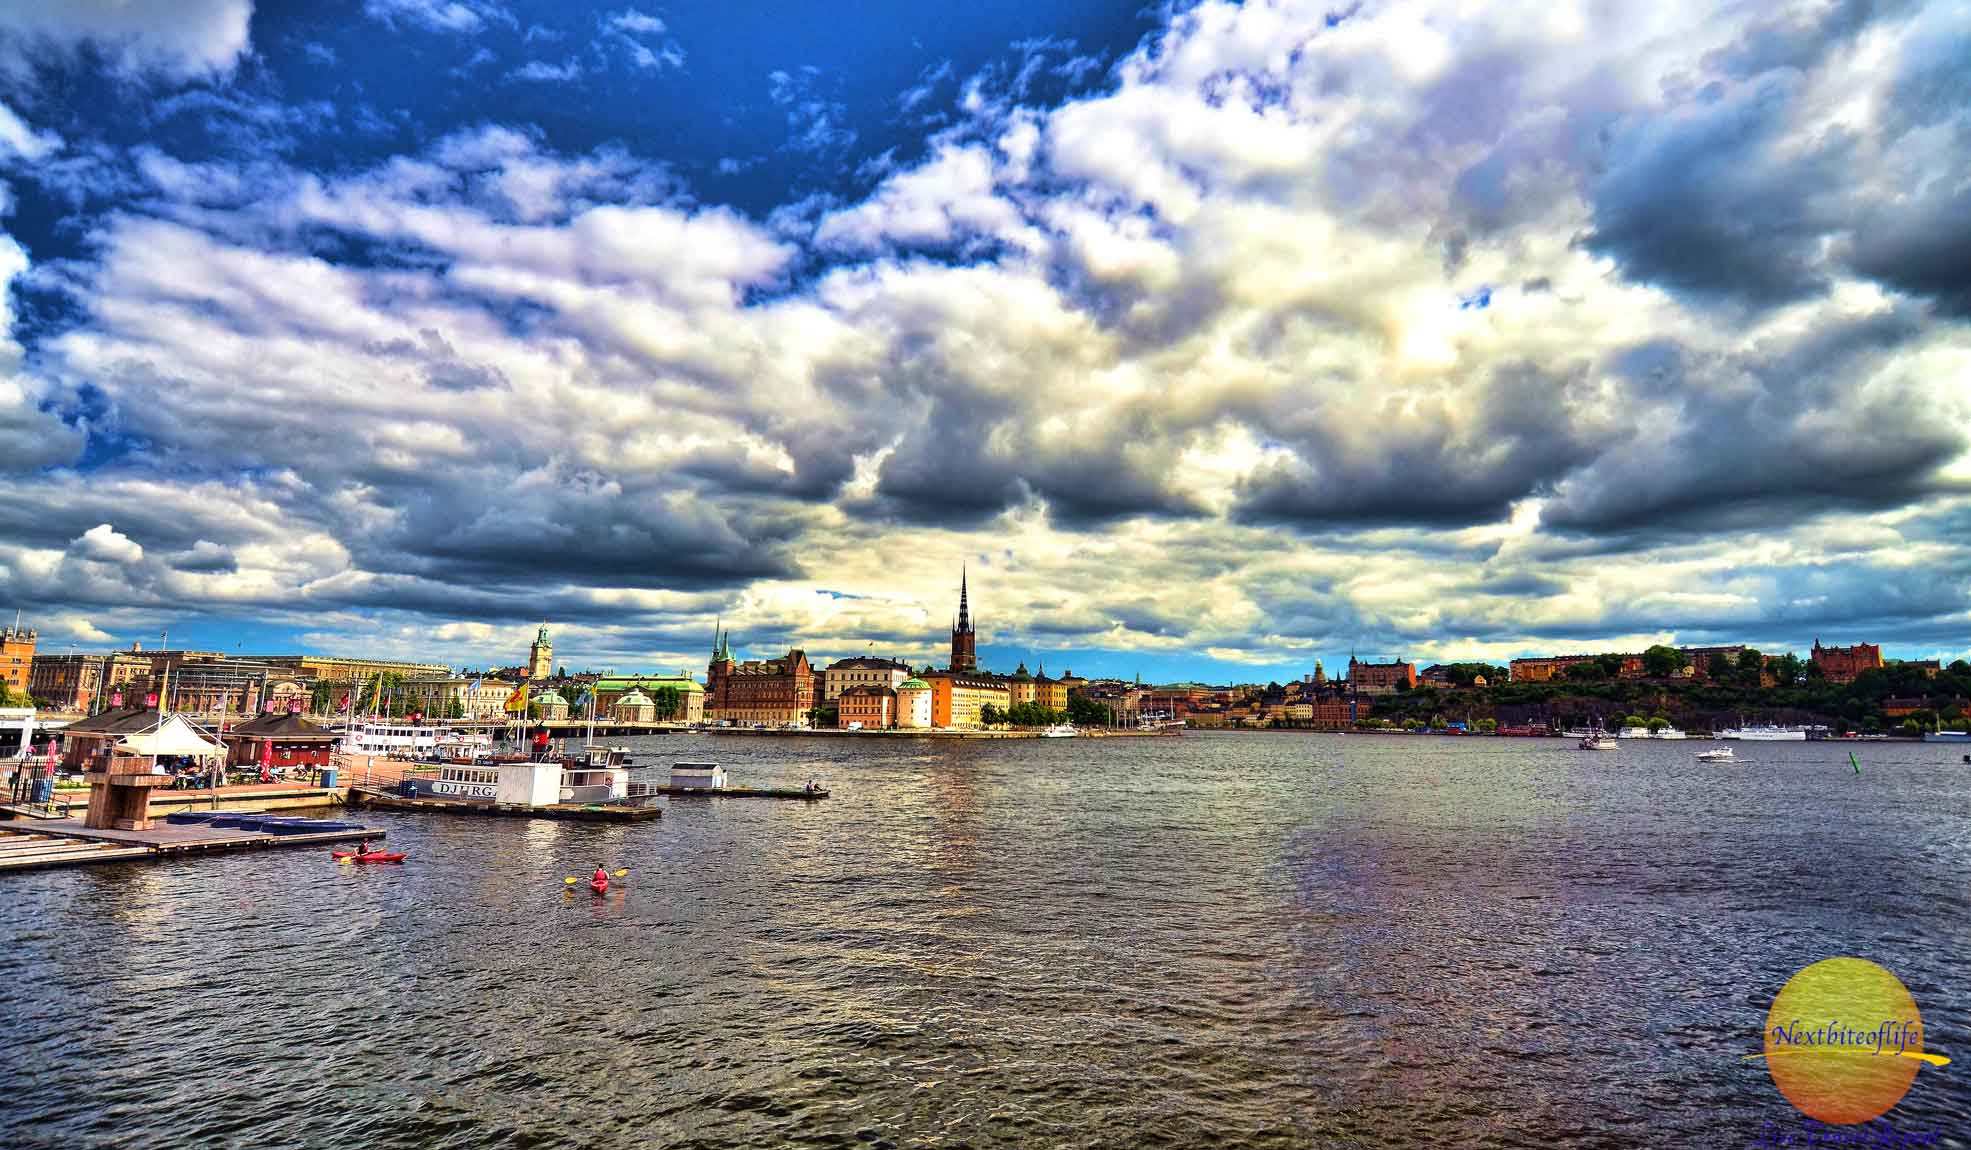 Another incredible view of Stockholm.